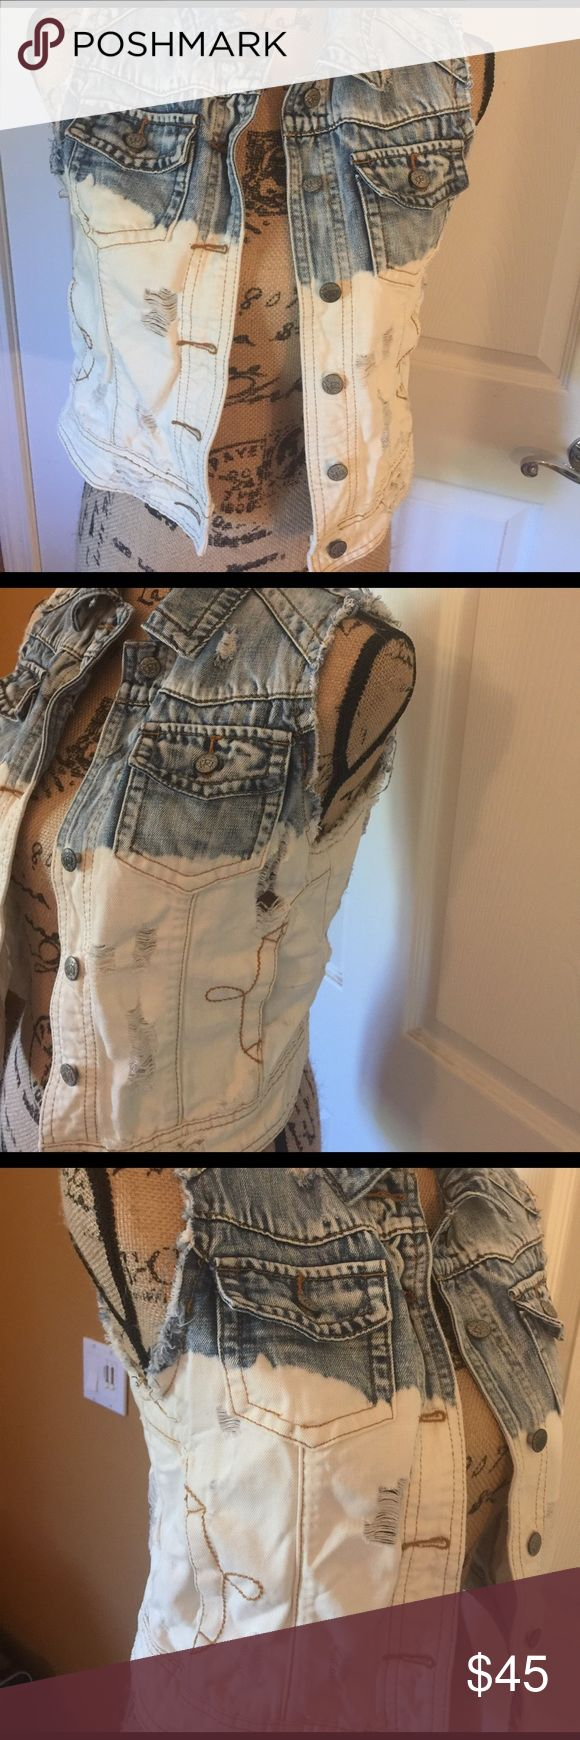 Ripped style 2 tone Jean vest by Lost Jean vest that has rips all over it. that's all the rage right now. Faded blue and white Jean vest. 2 breast pockets and side pockets. Looks very cute on with everything. Very stylish right not. Cute with ripped jeans. Other